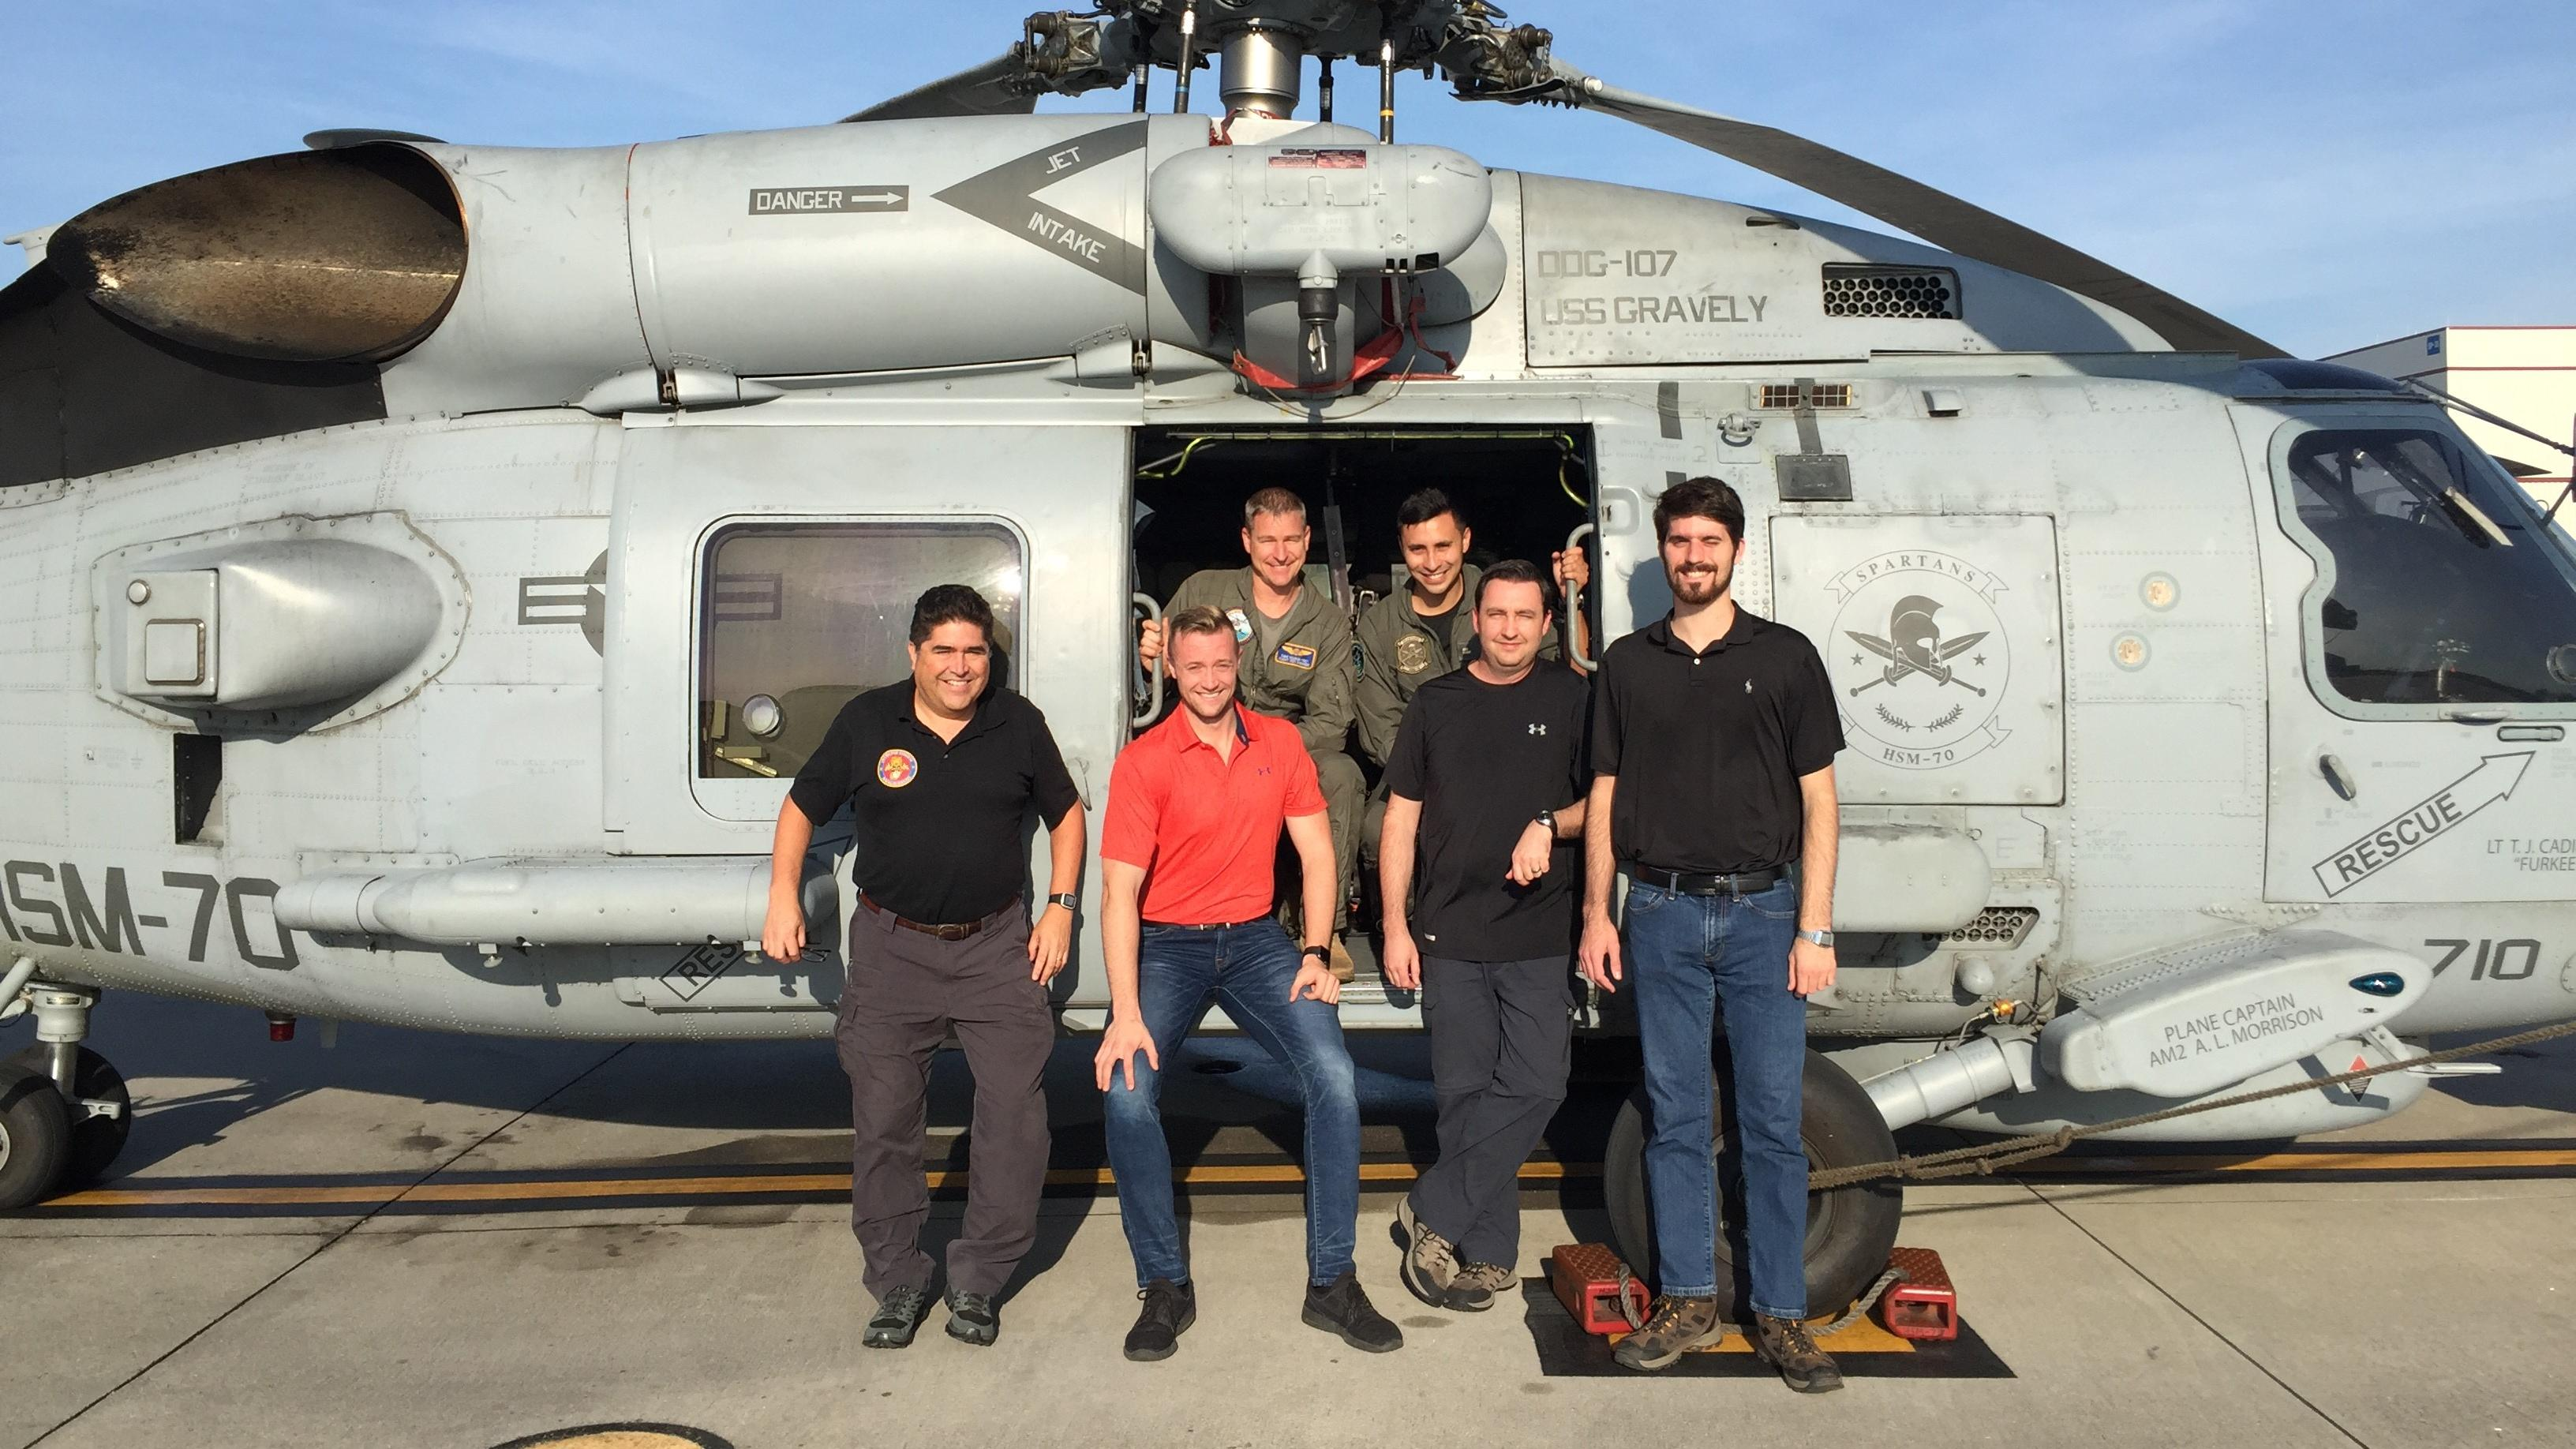 Mike Herrera named NAVAIR Mentor of the Year for Point Mugu